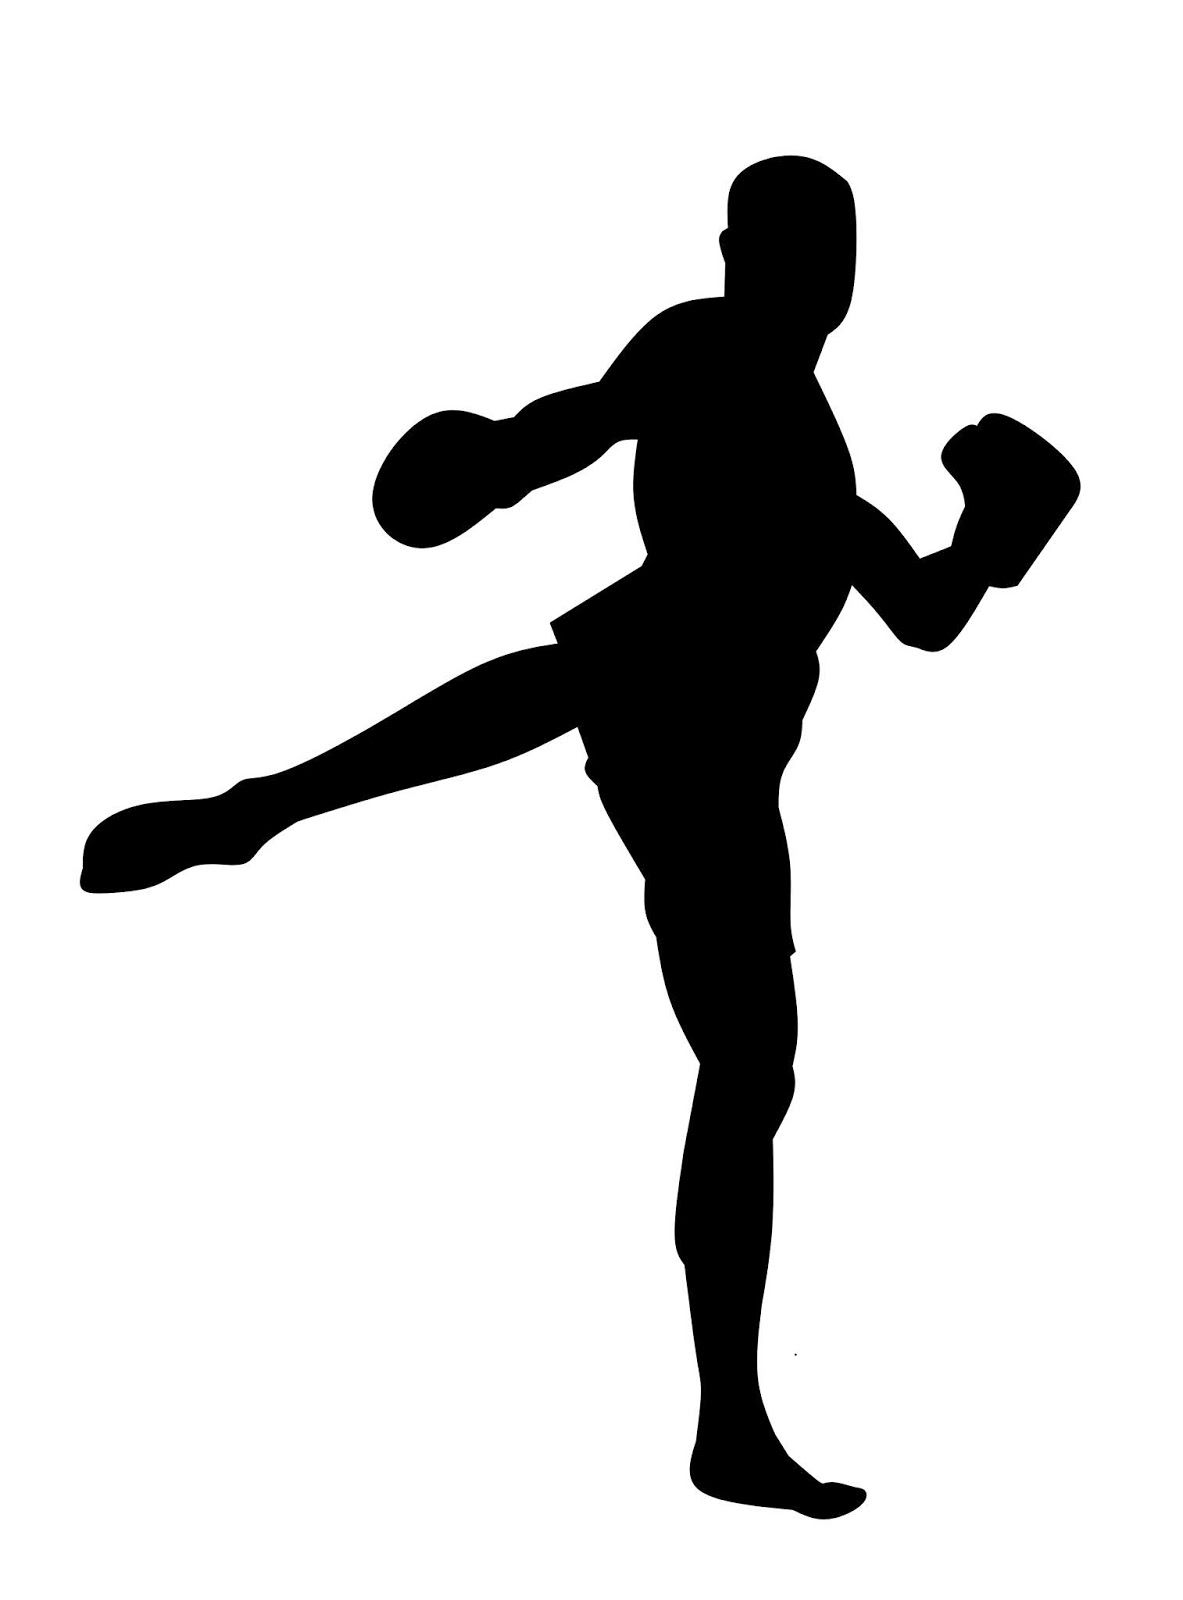 Boxing Boxer Man Silhouette Fighter Exercise Fighting Gloves Kickboxing Fight Power Strong Stand Design The Kickboxing Silhouette Silhouette Free